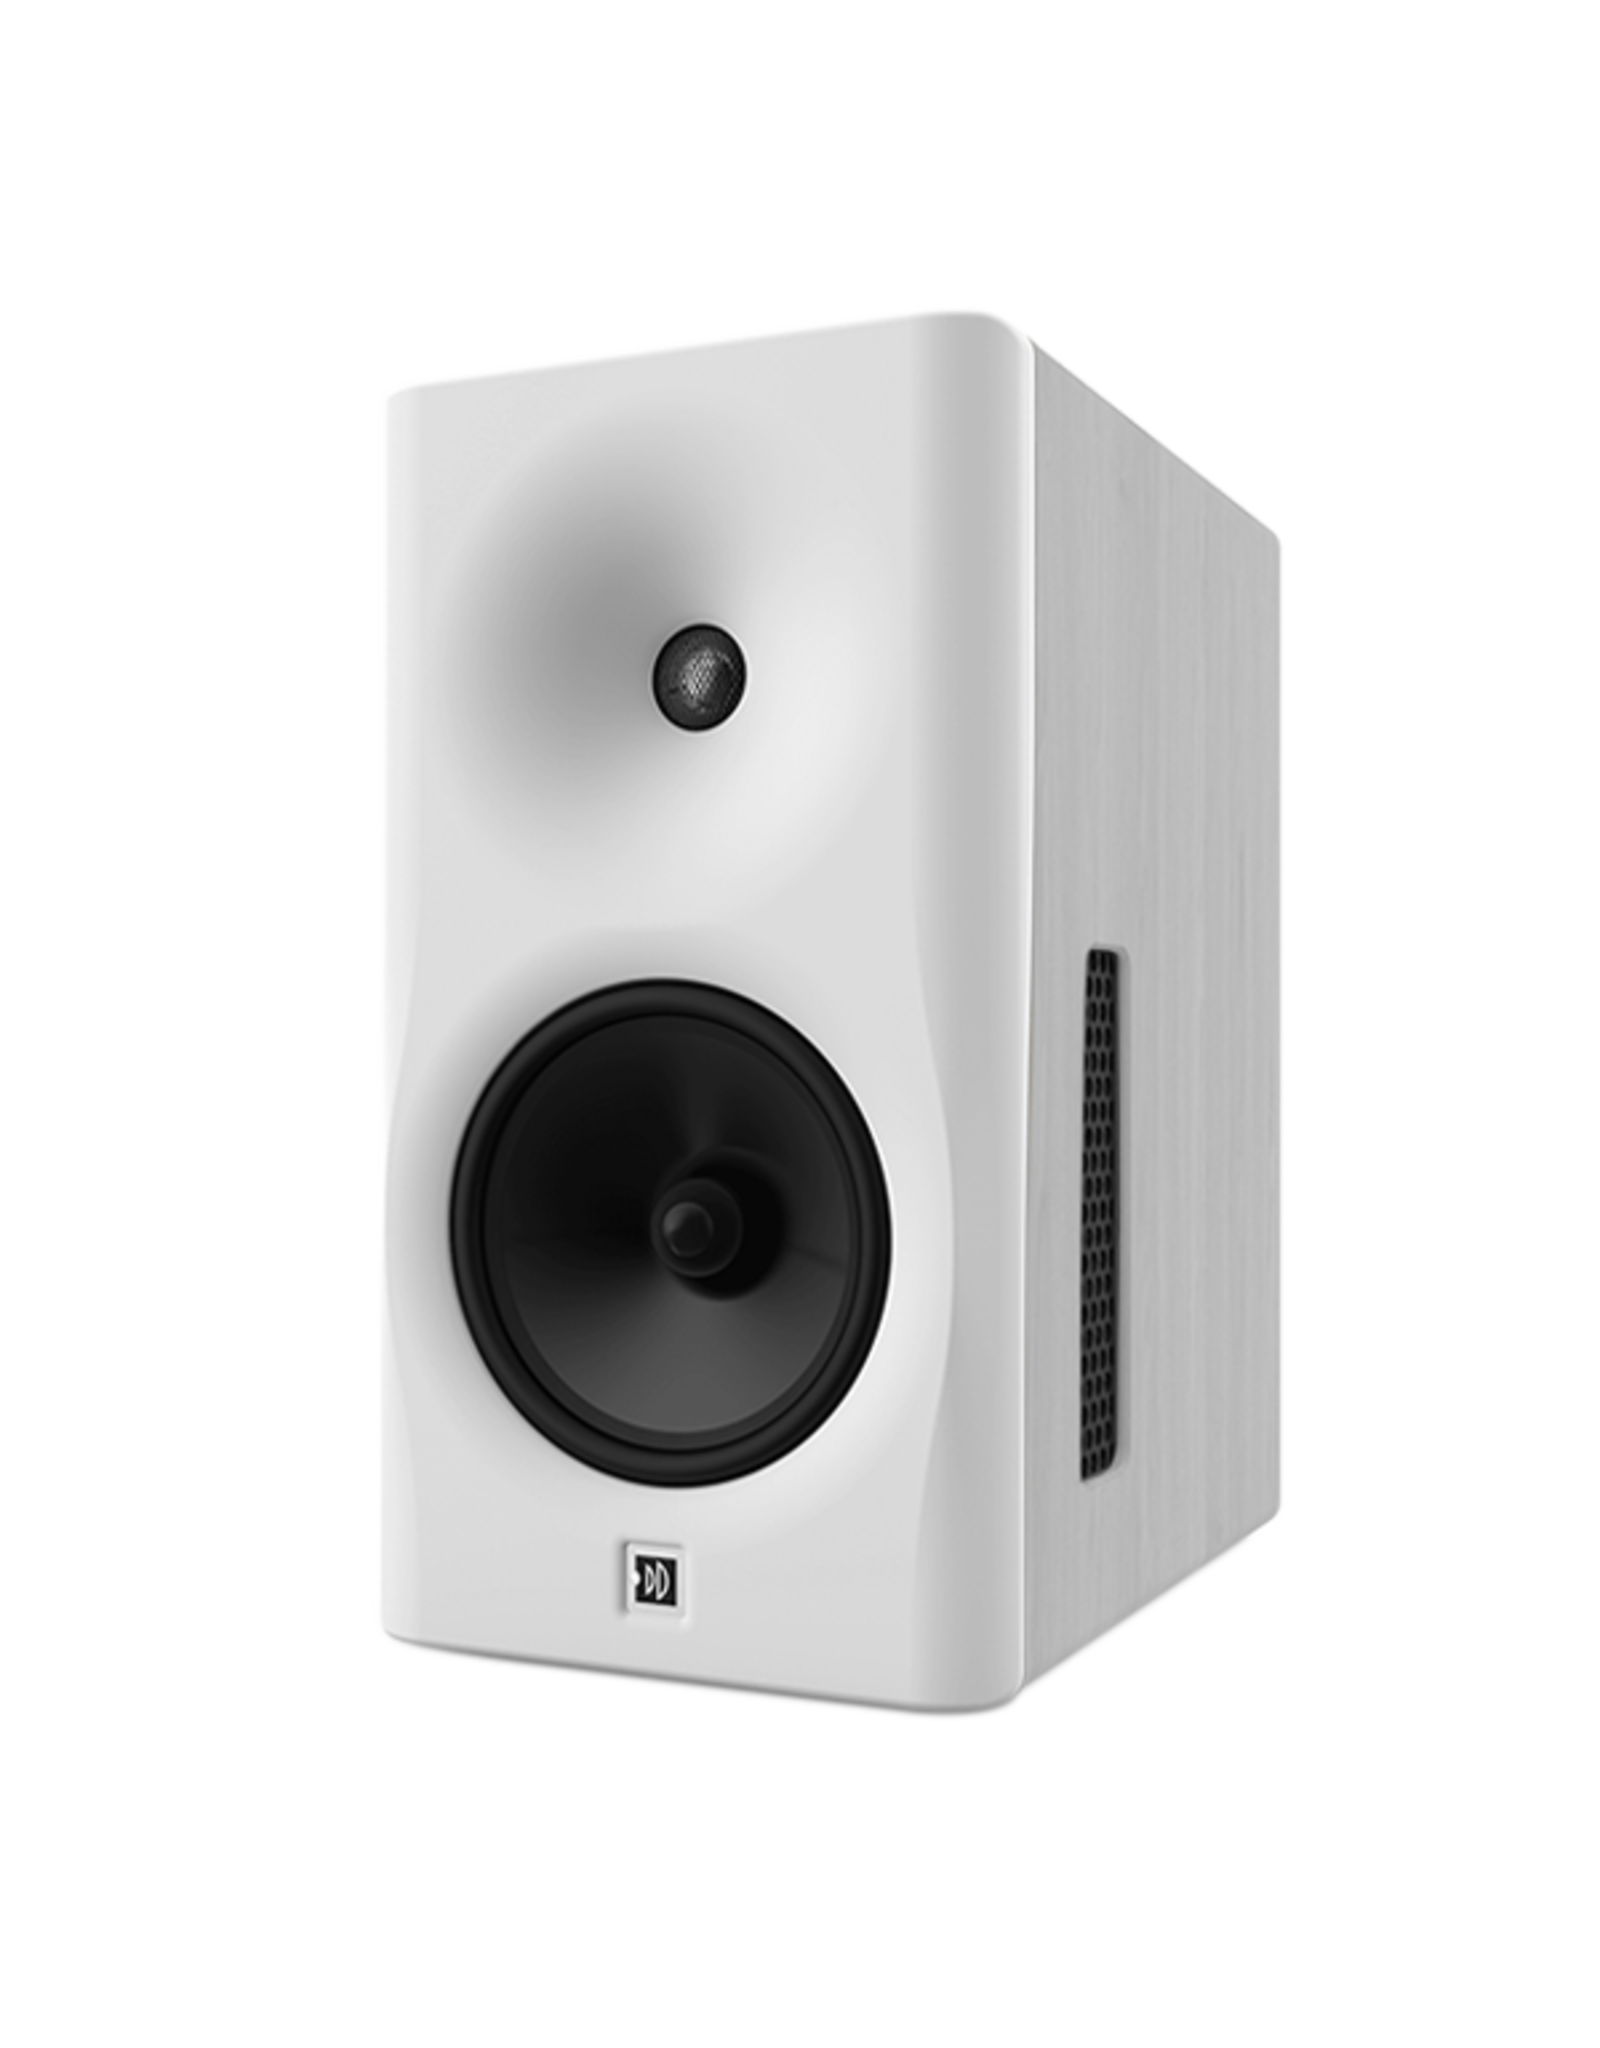 Dutch & Dutch 8C speaker, white baffle, white cabinet